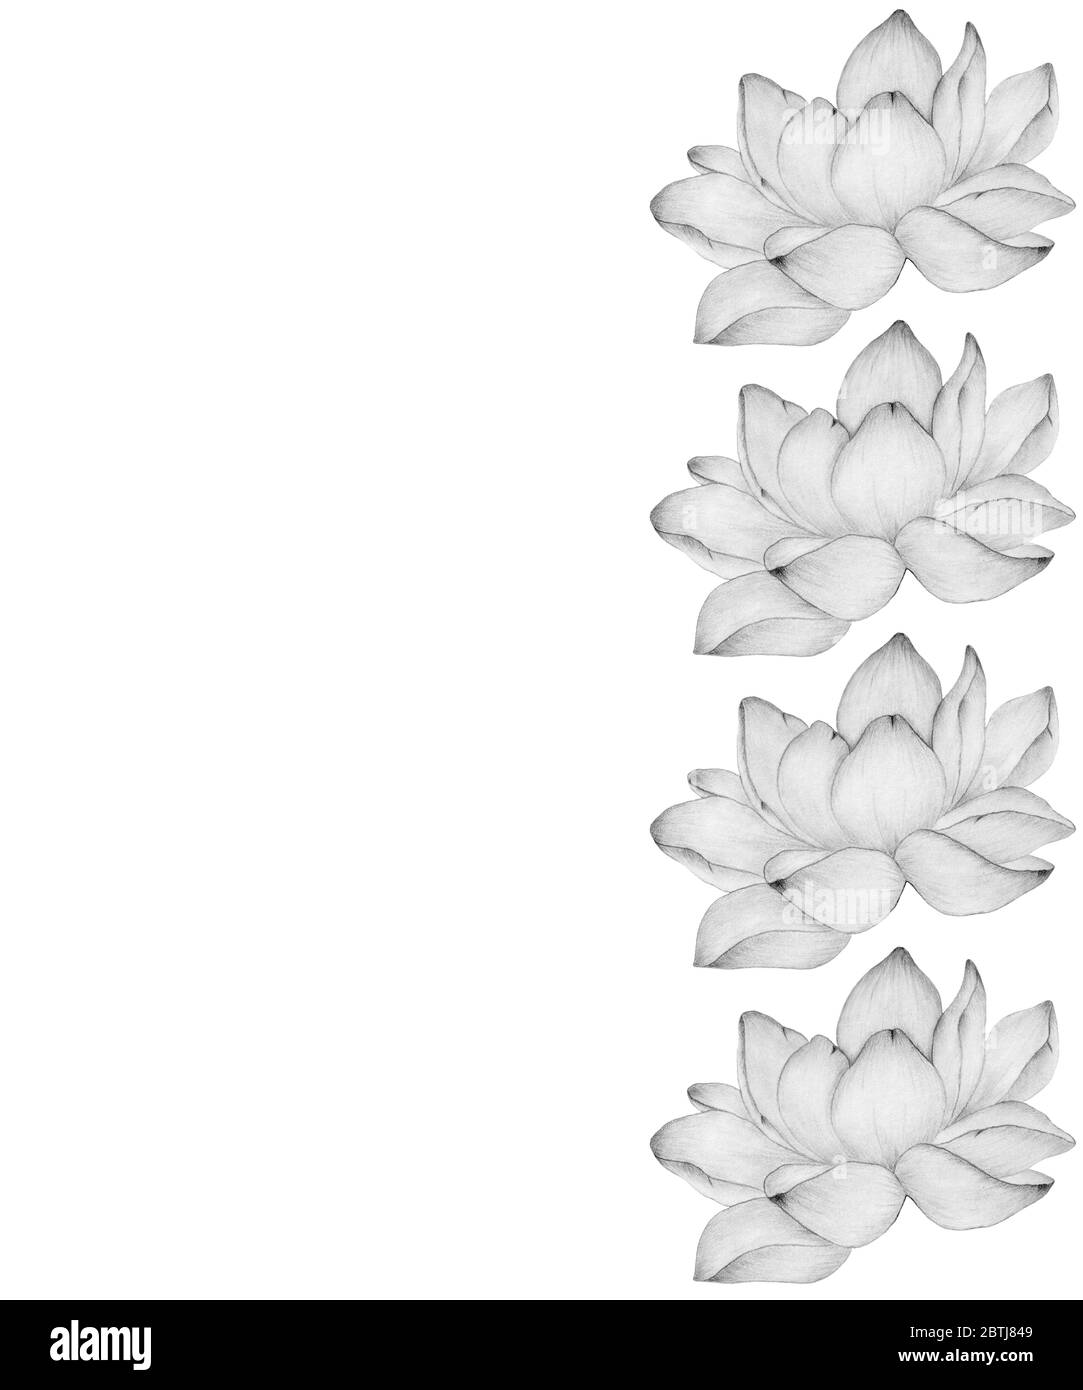 Realistic Lotus Drawing : realistic, lotus, drawing, Frame, Monochrome, Lotus, Flower, Space,, Floral, Decoration, Blooming, Water, Flowers,, Realistic, Pencil, Drawing, Illustration, Stock, Photo, Alamy